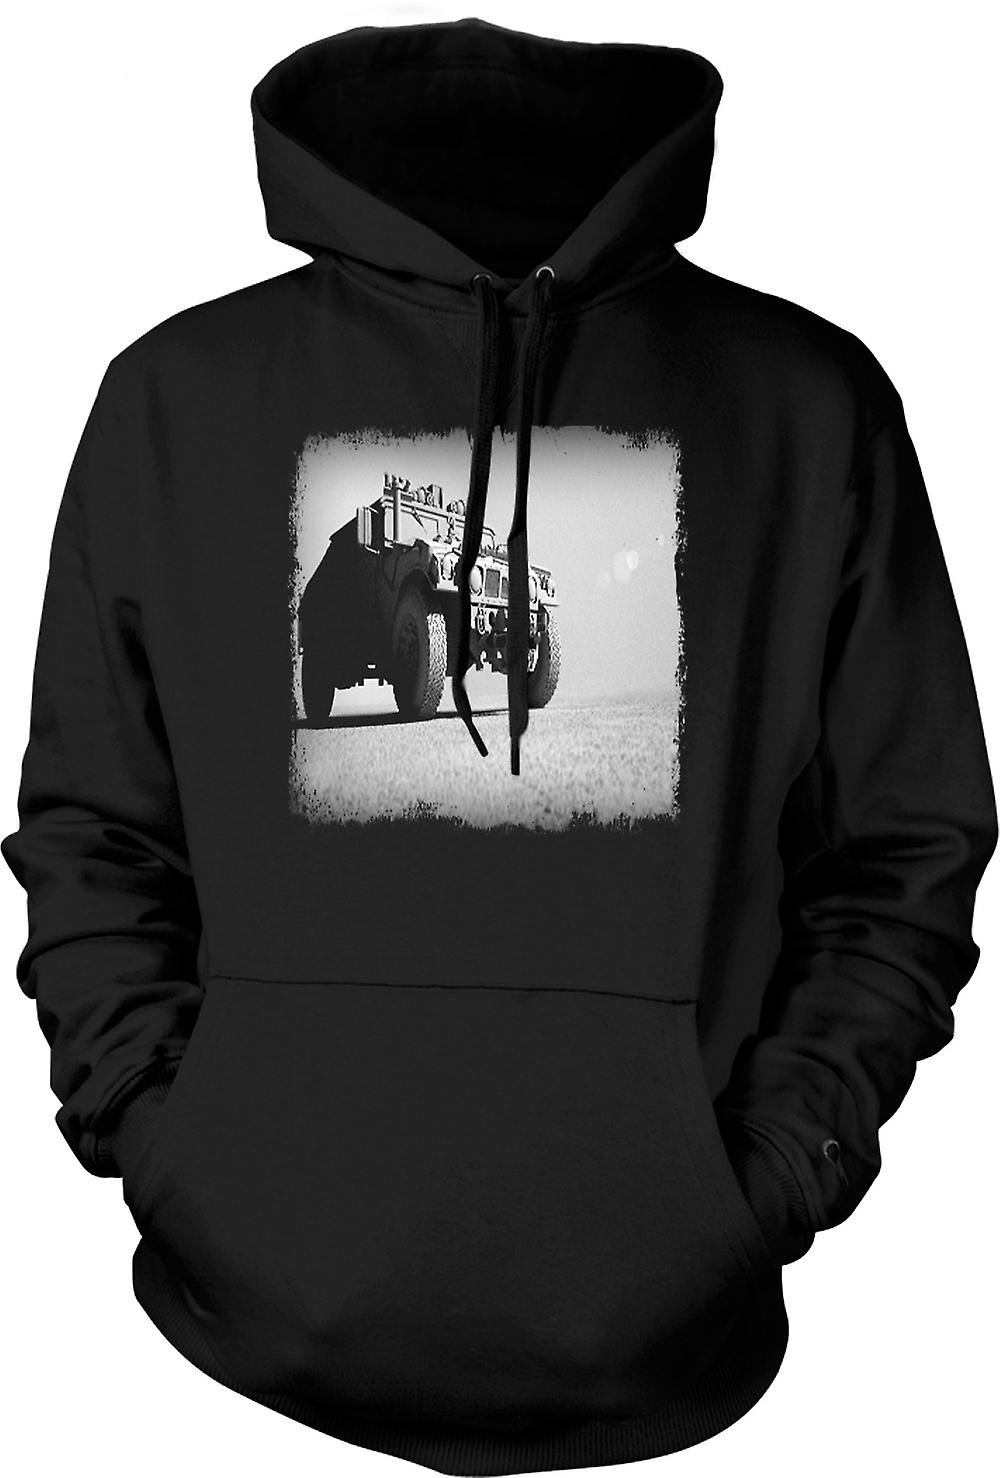 Mens Hoodie - US Army Humvee - Desert Warrior